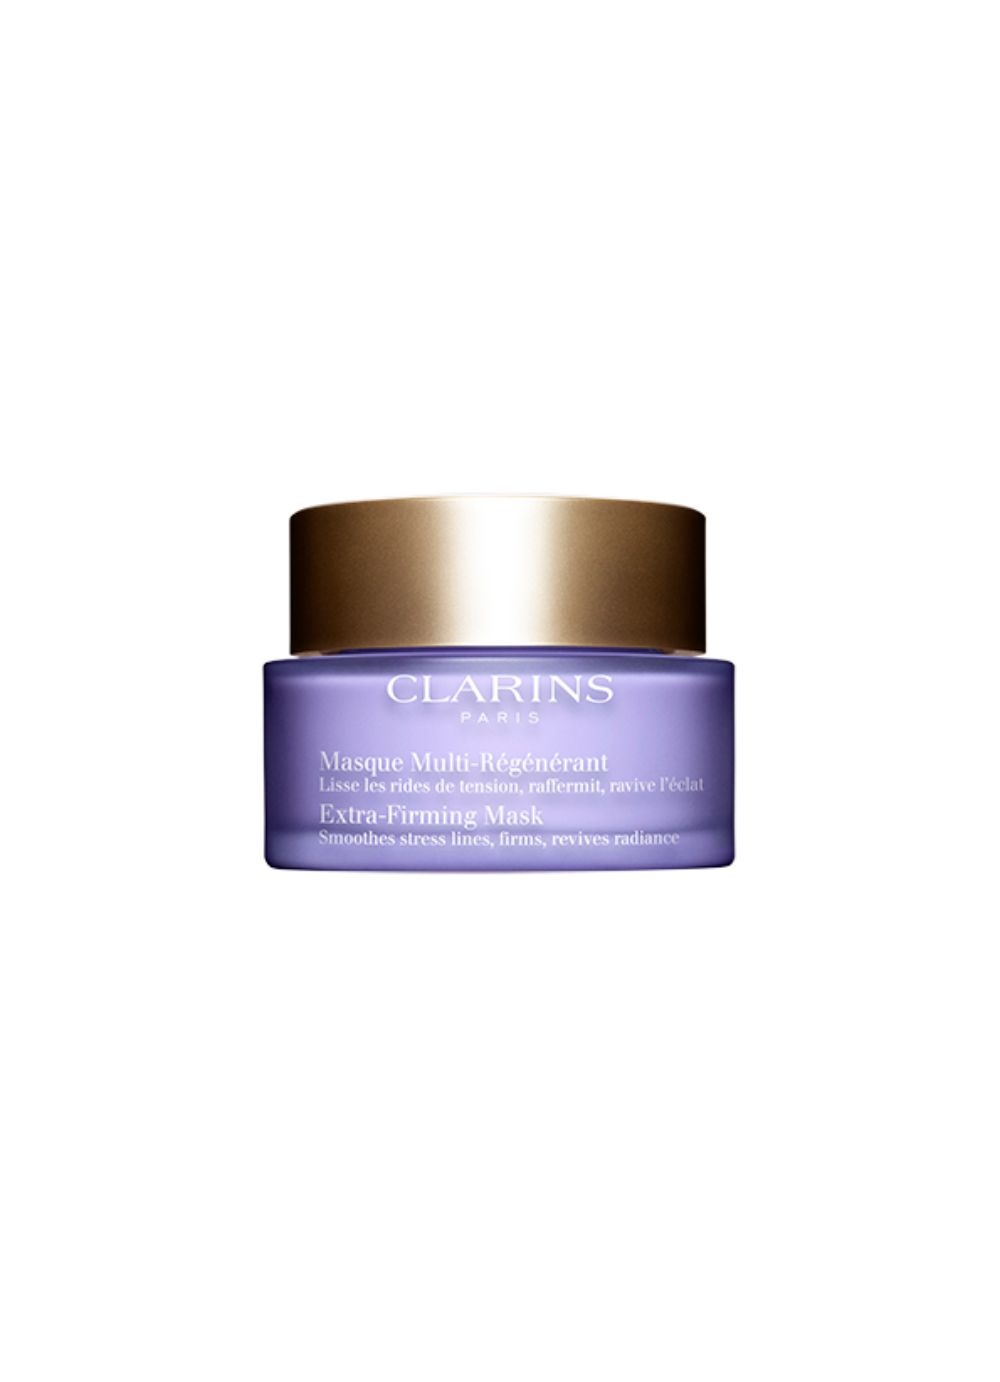 Clarins Extra-Firming Mask, 75 ml